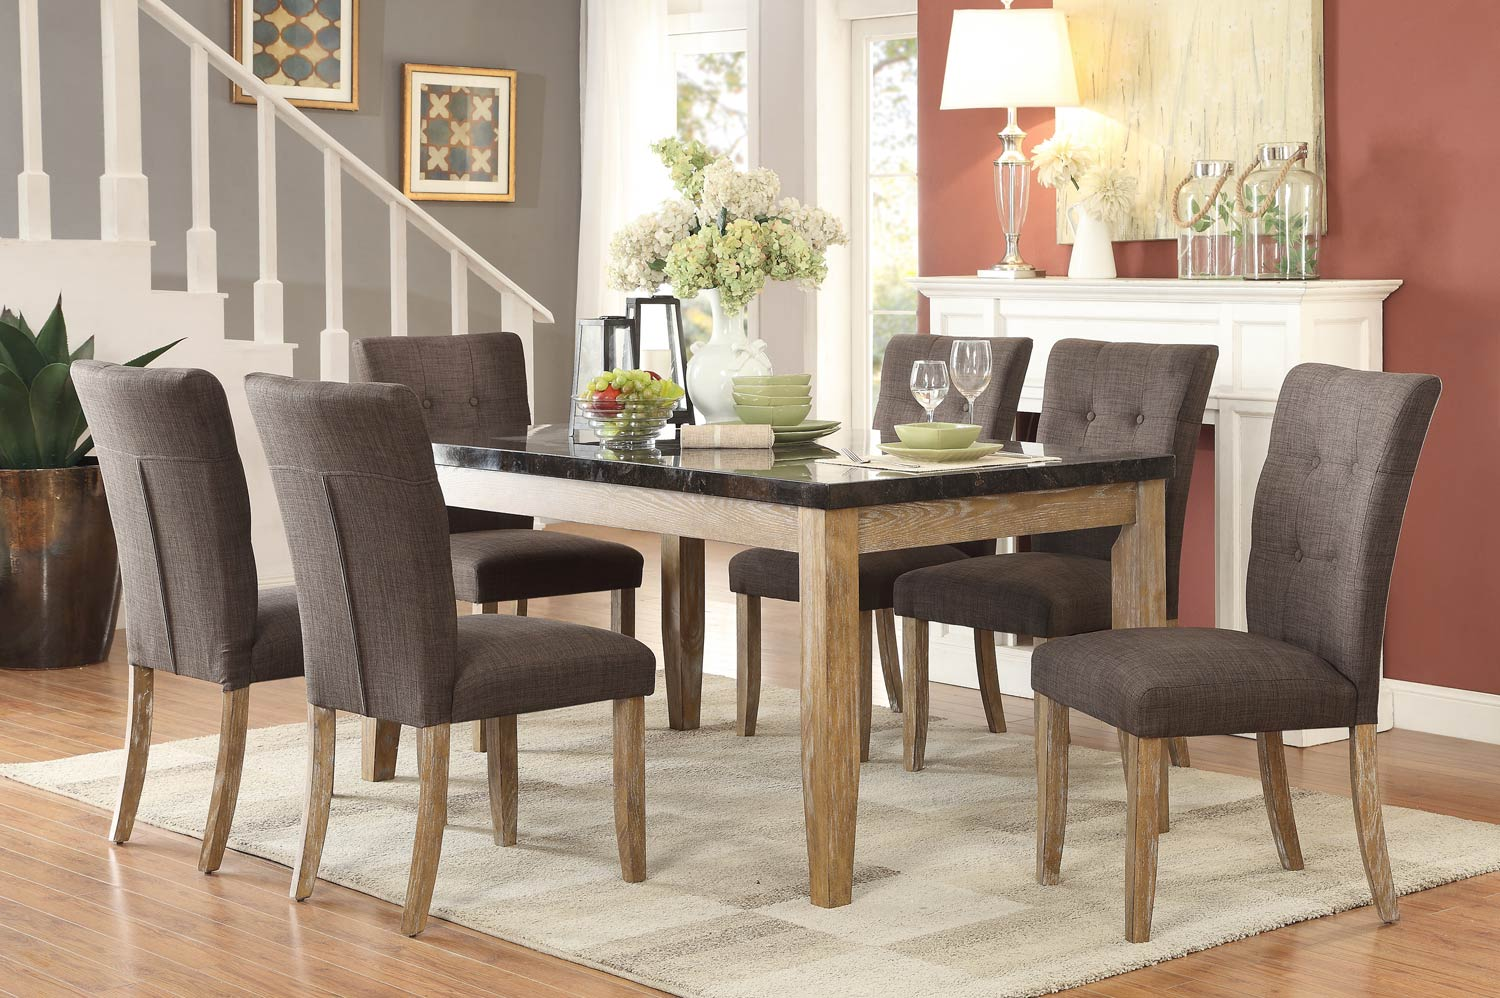 Homelegance Huron Dining Set - Faux Marble Top - Weathered Wood